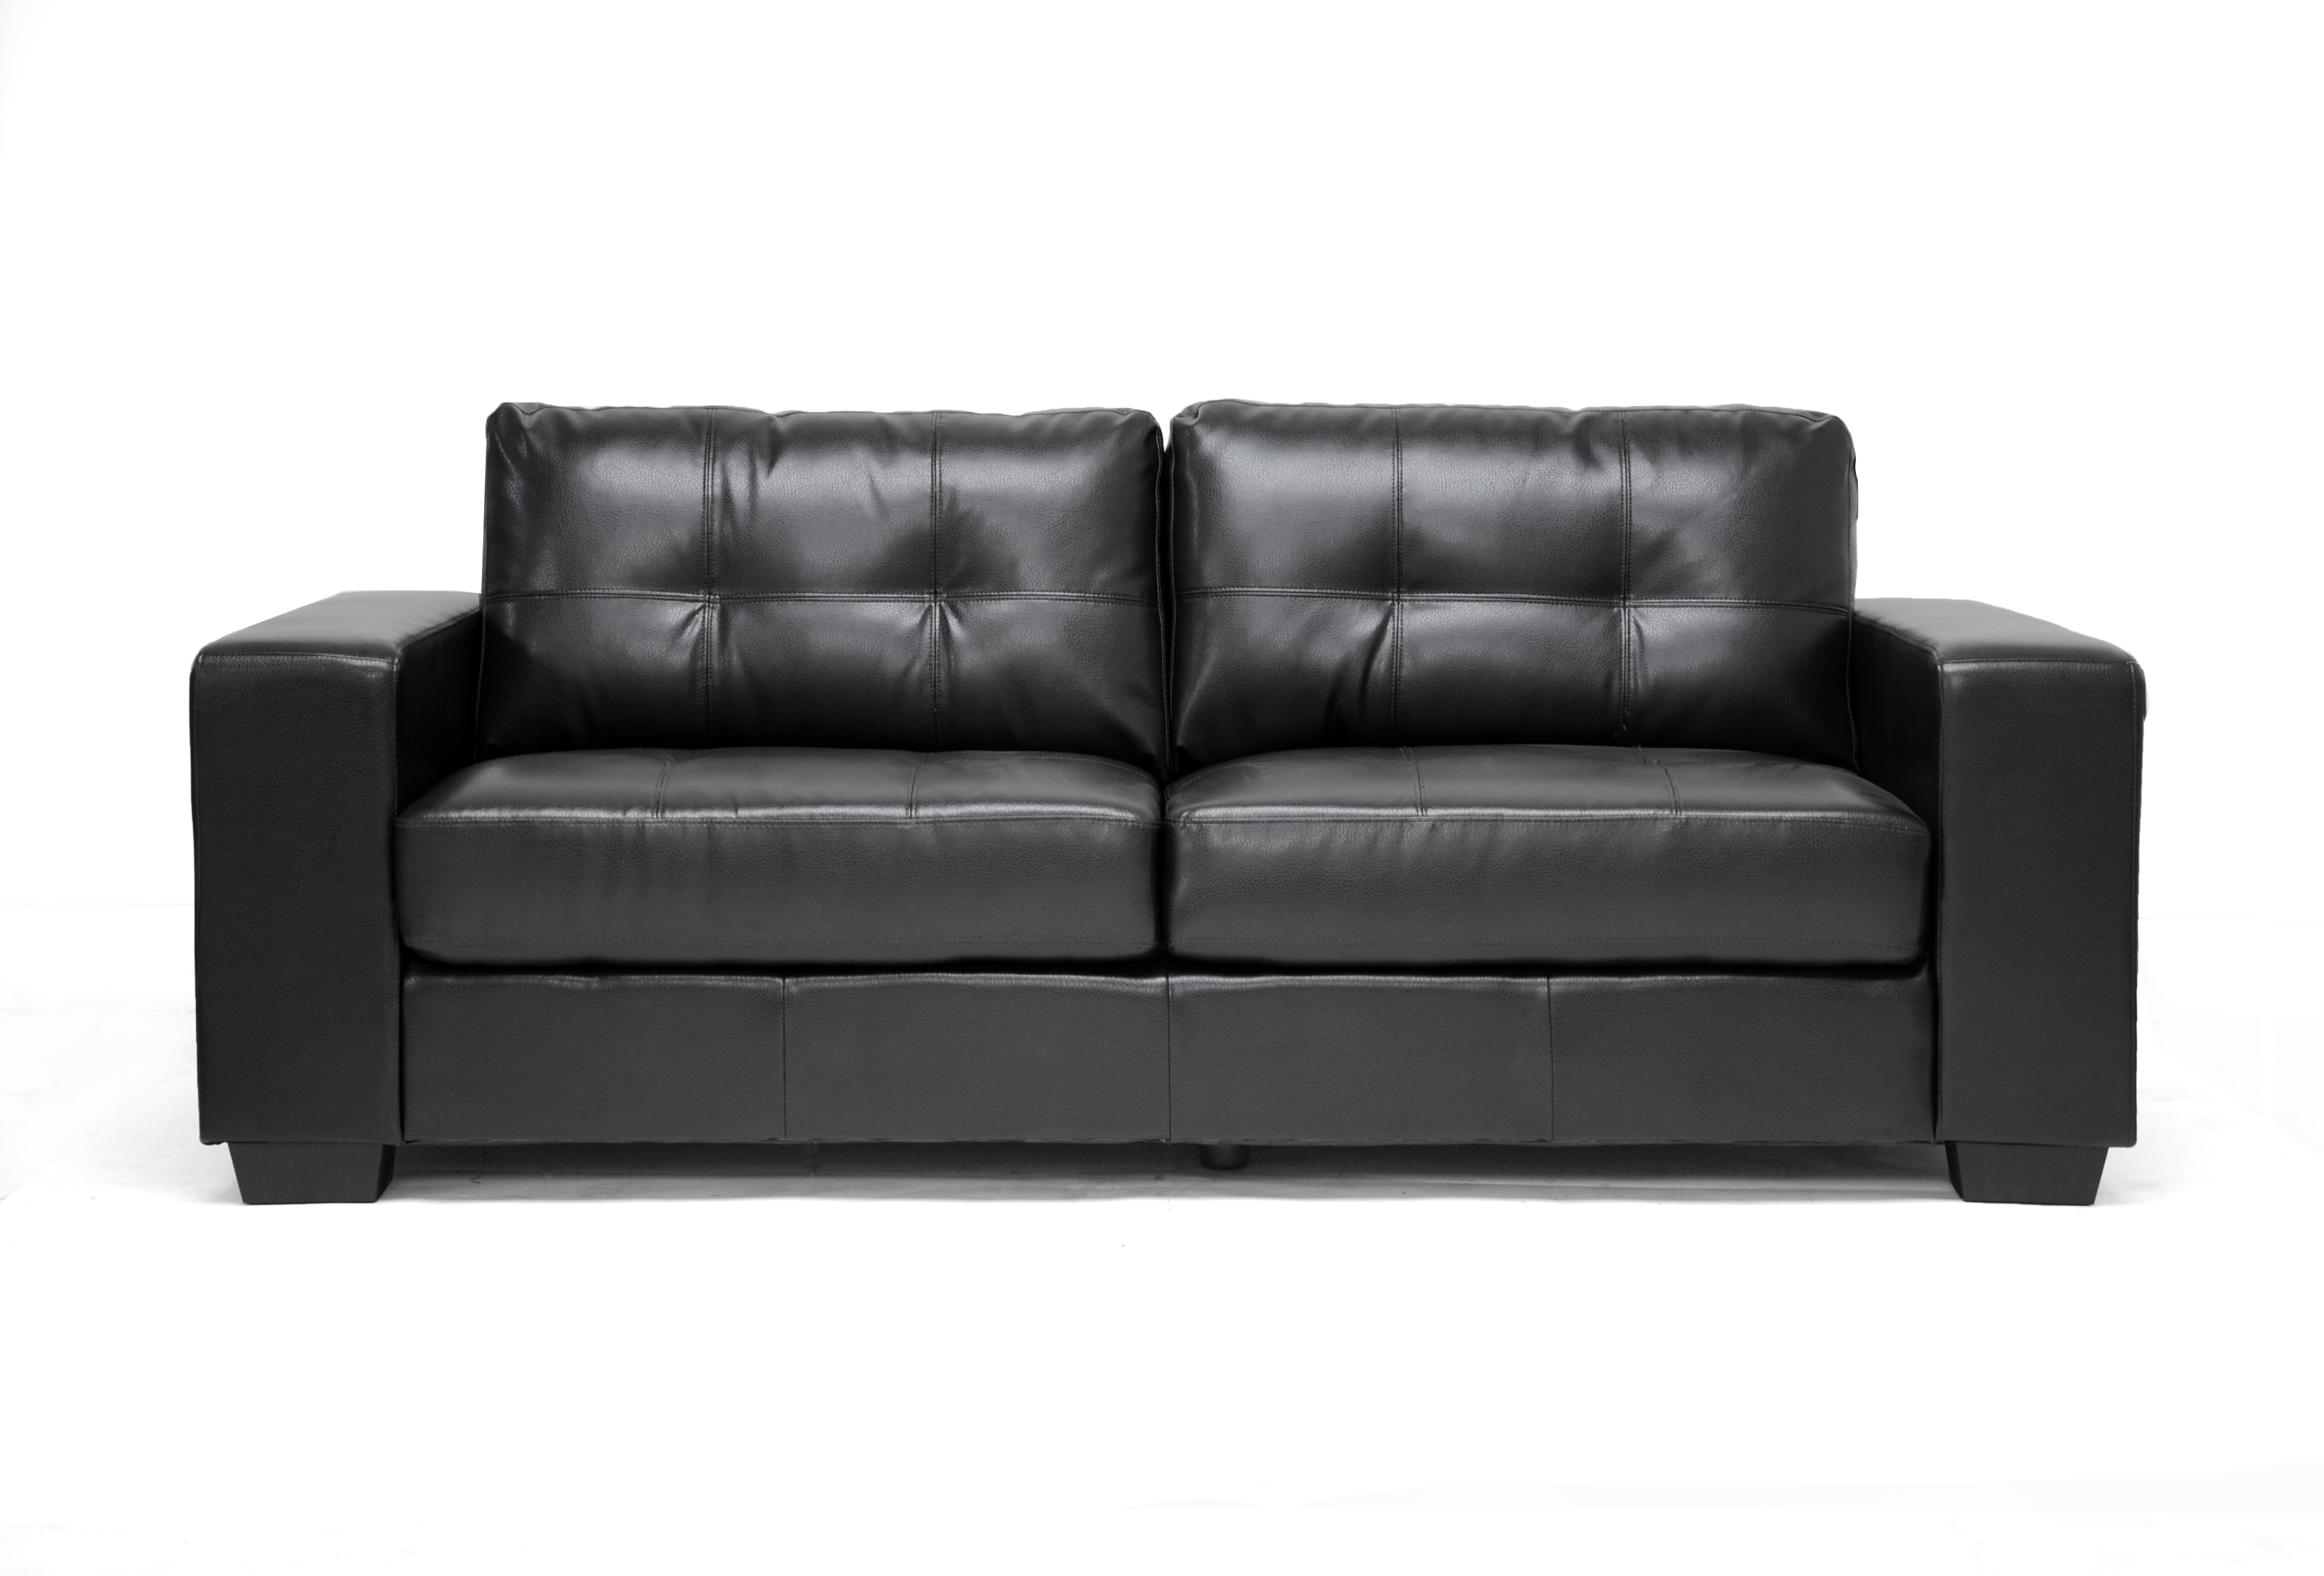 Interio Sofa Marilyn Elite Contemporary Black Leather Sofa Set Anaheim Inspirational